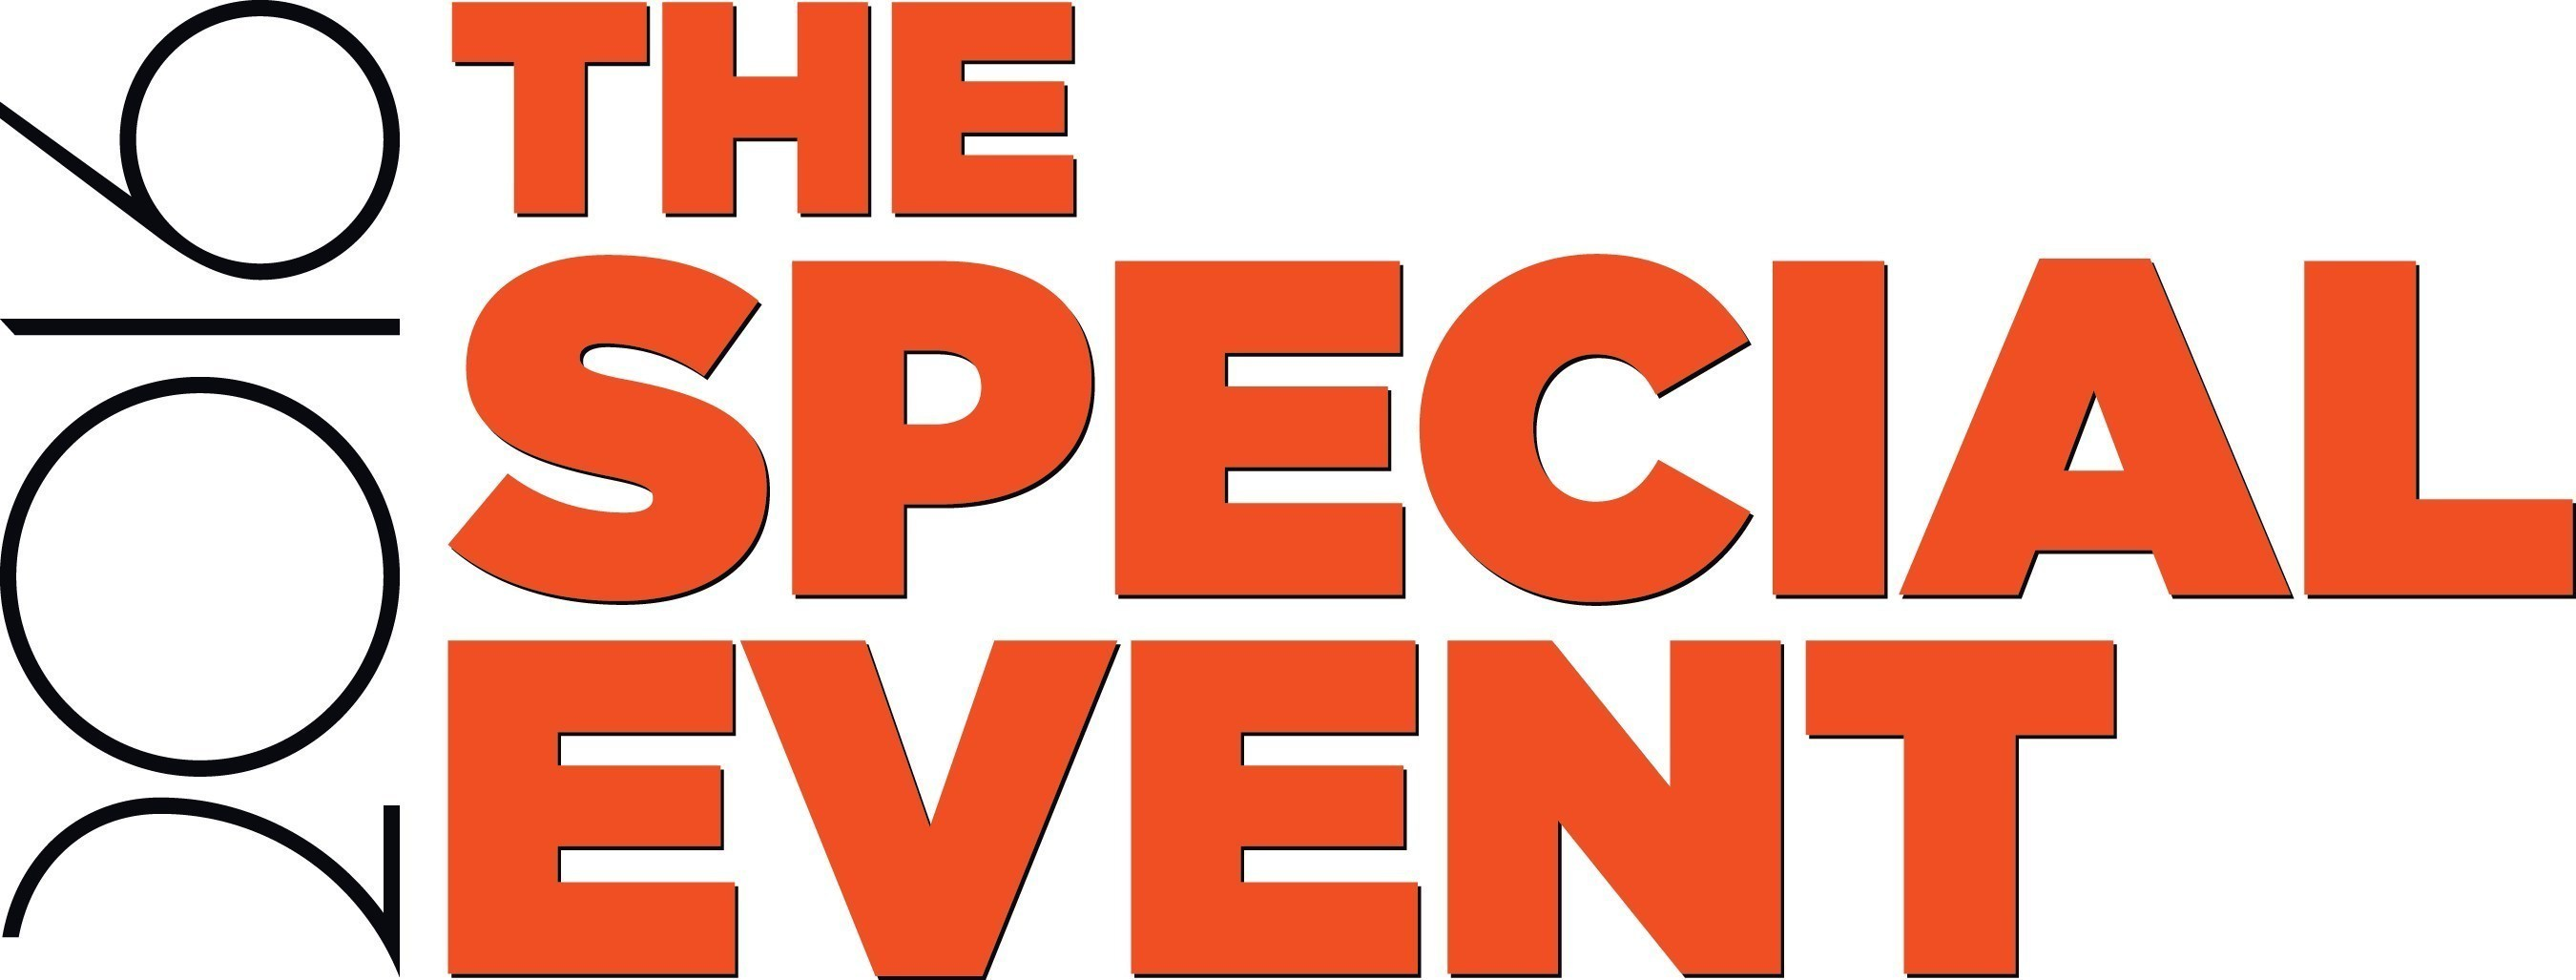 Penton's The Special Event Show Invites Event Professionals to TSE 2016 January 11-14, 2016